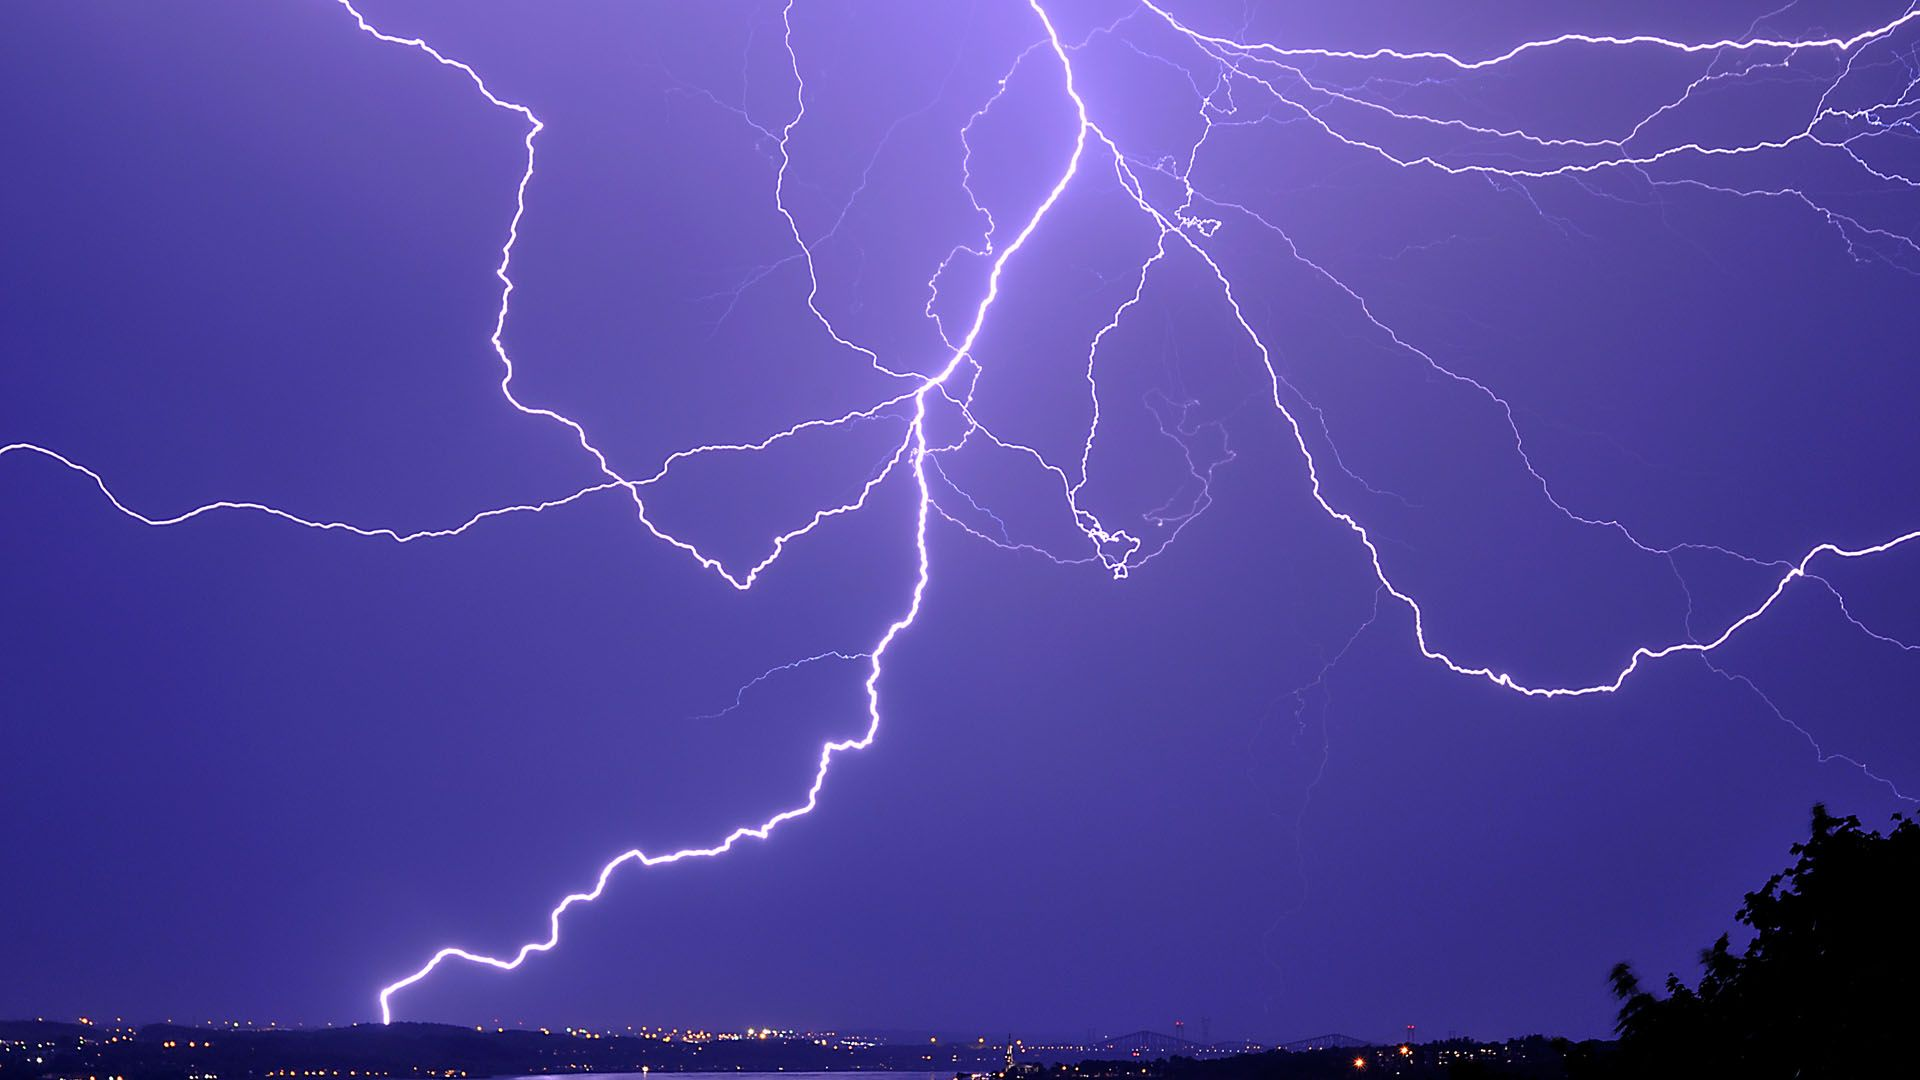 The Picture Thunderstorm And Lightning For Kids